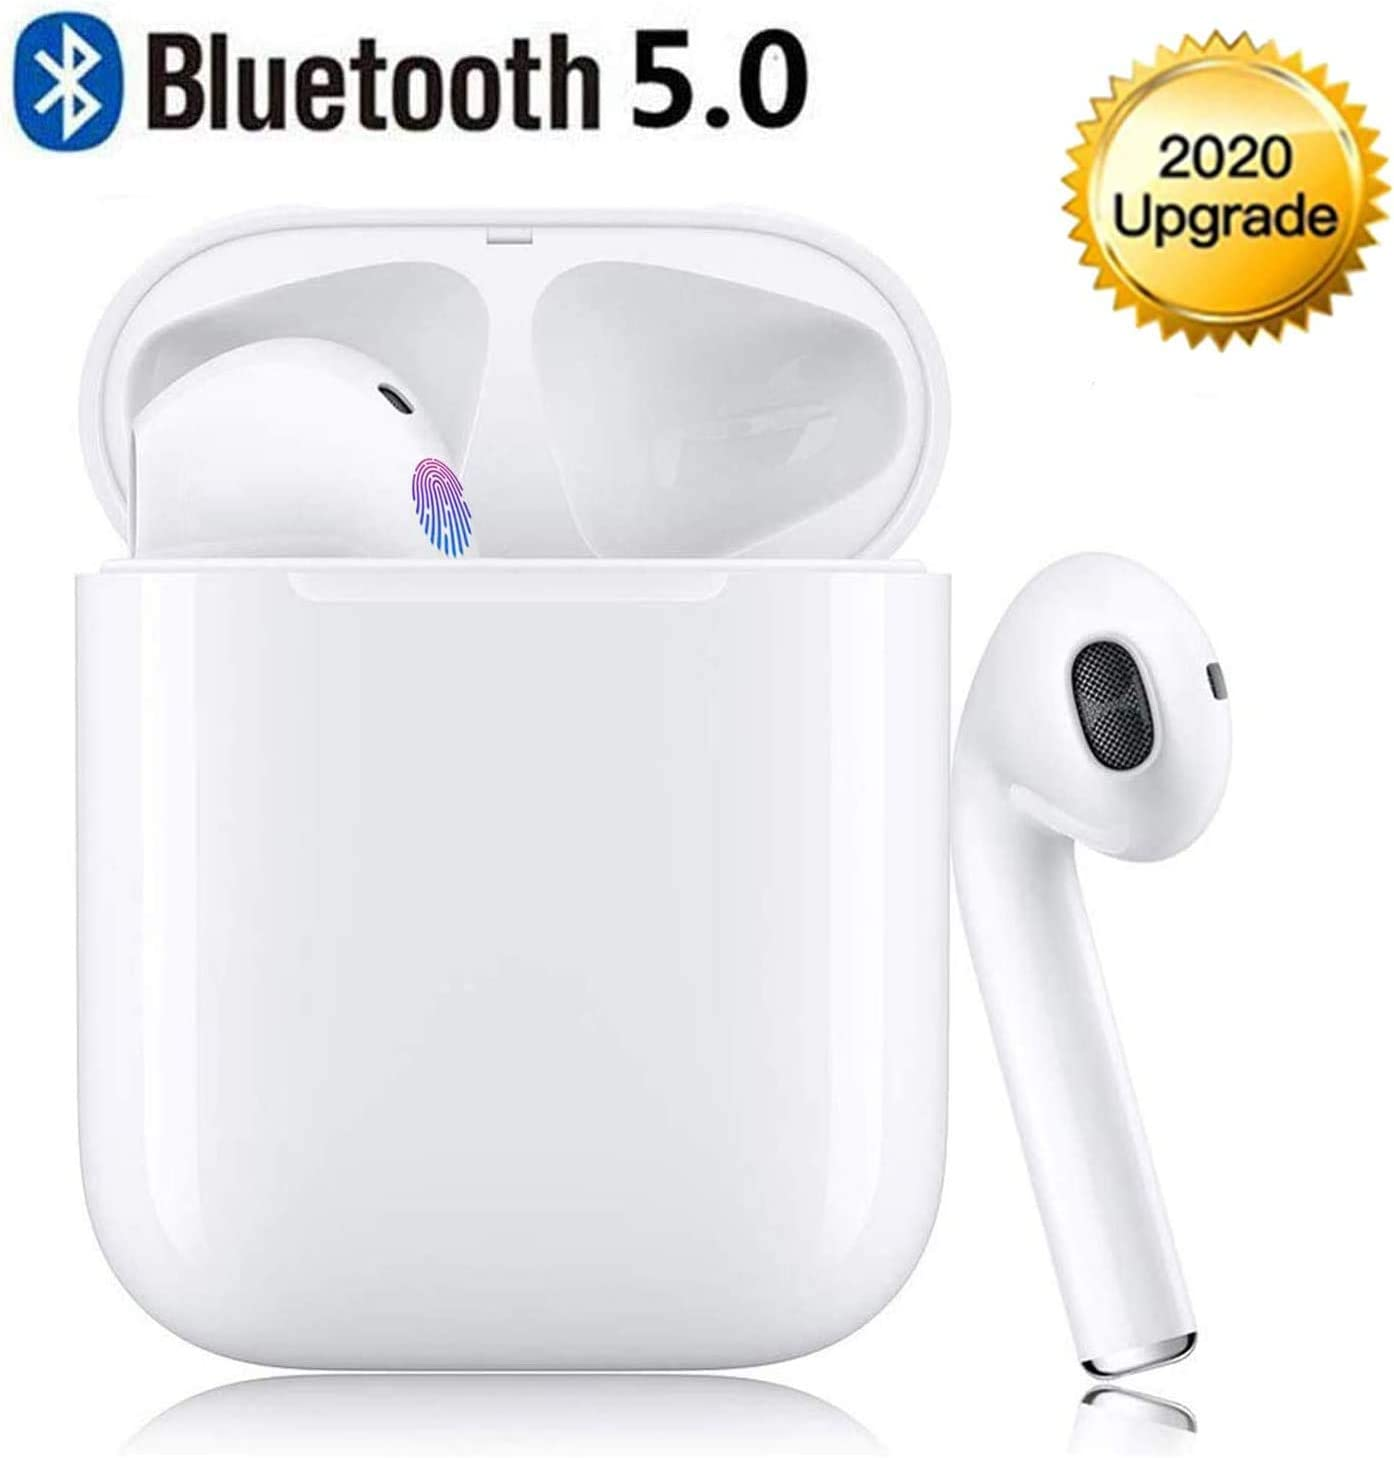 Bluetooth Earbuds Bluetooth 5.0 Built-in Mic Headphones for Phone HiFi Stereo Sound 5-6 Hours Long Playtime Noise Cancelling Earphones with Charging Case – Five White